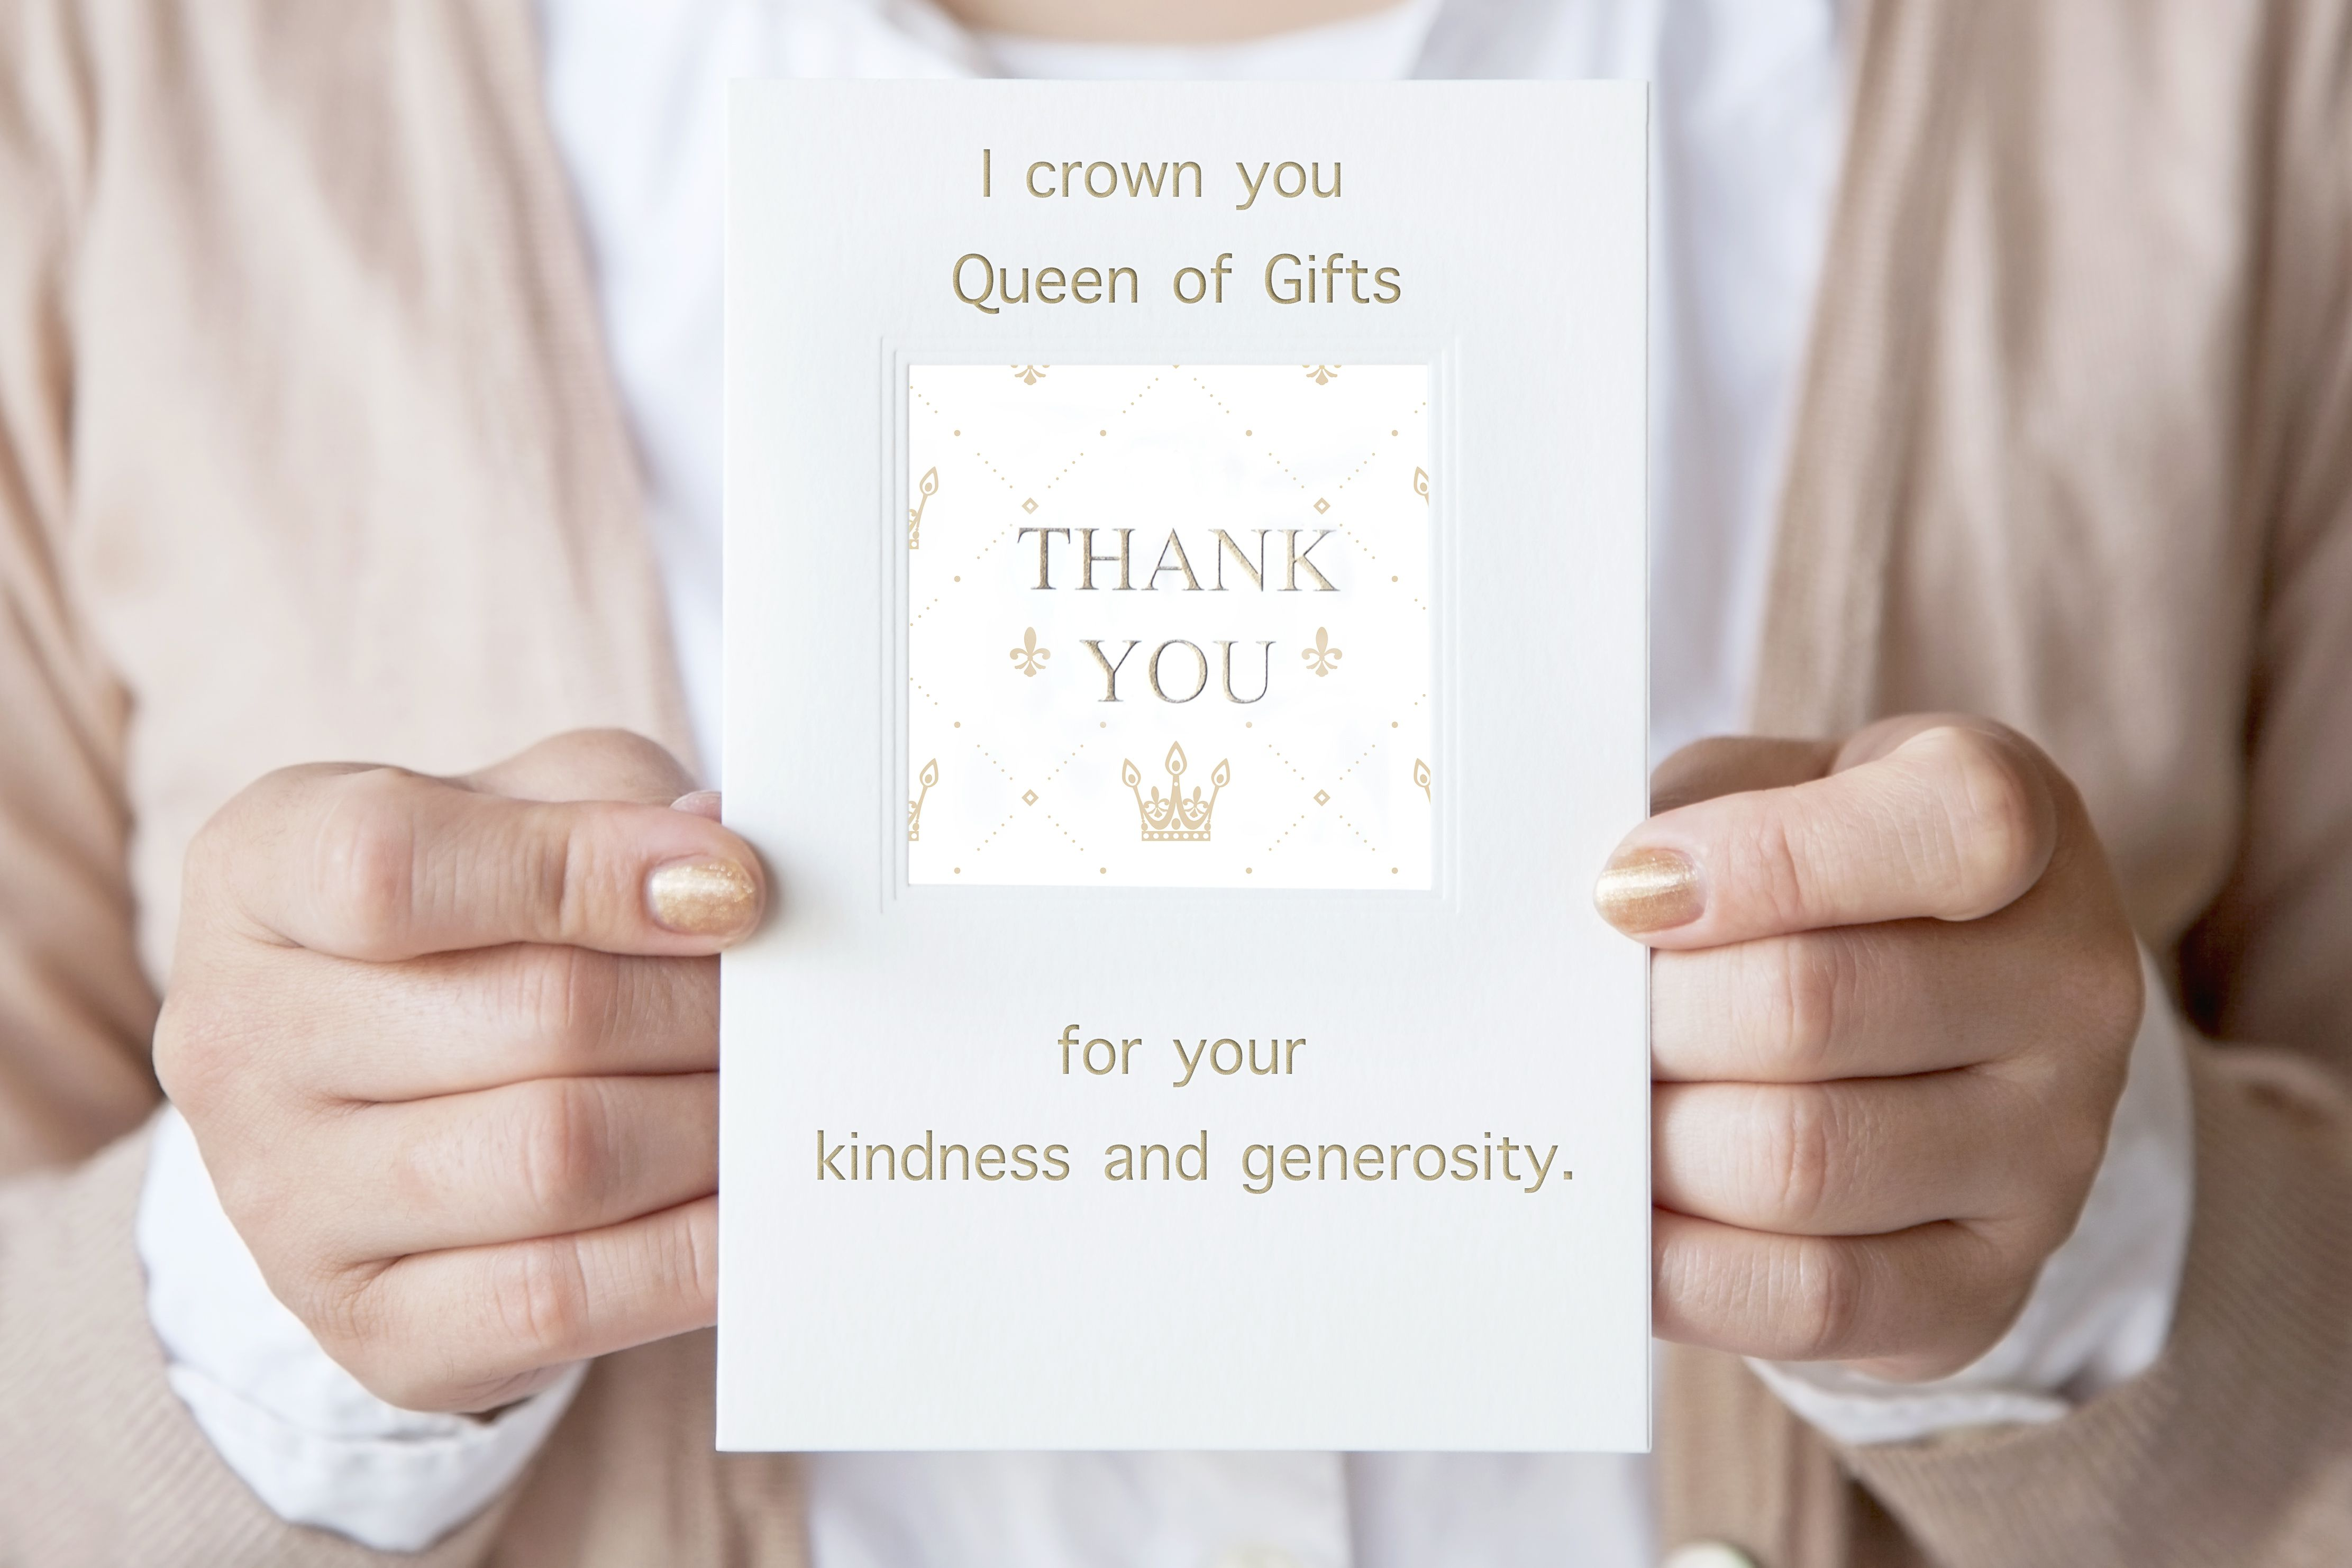 002 Unforgettable Thank You Note Wording Baby Shower Inspiration  For Hosting CardFull